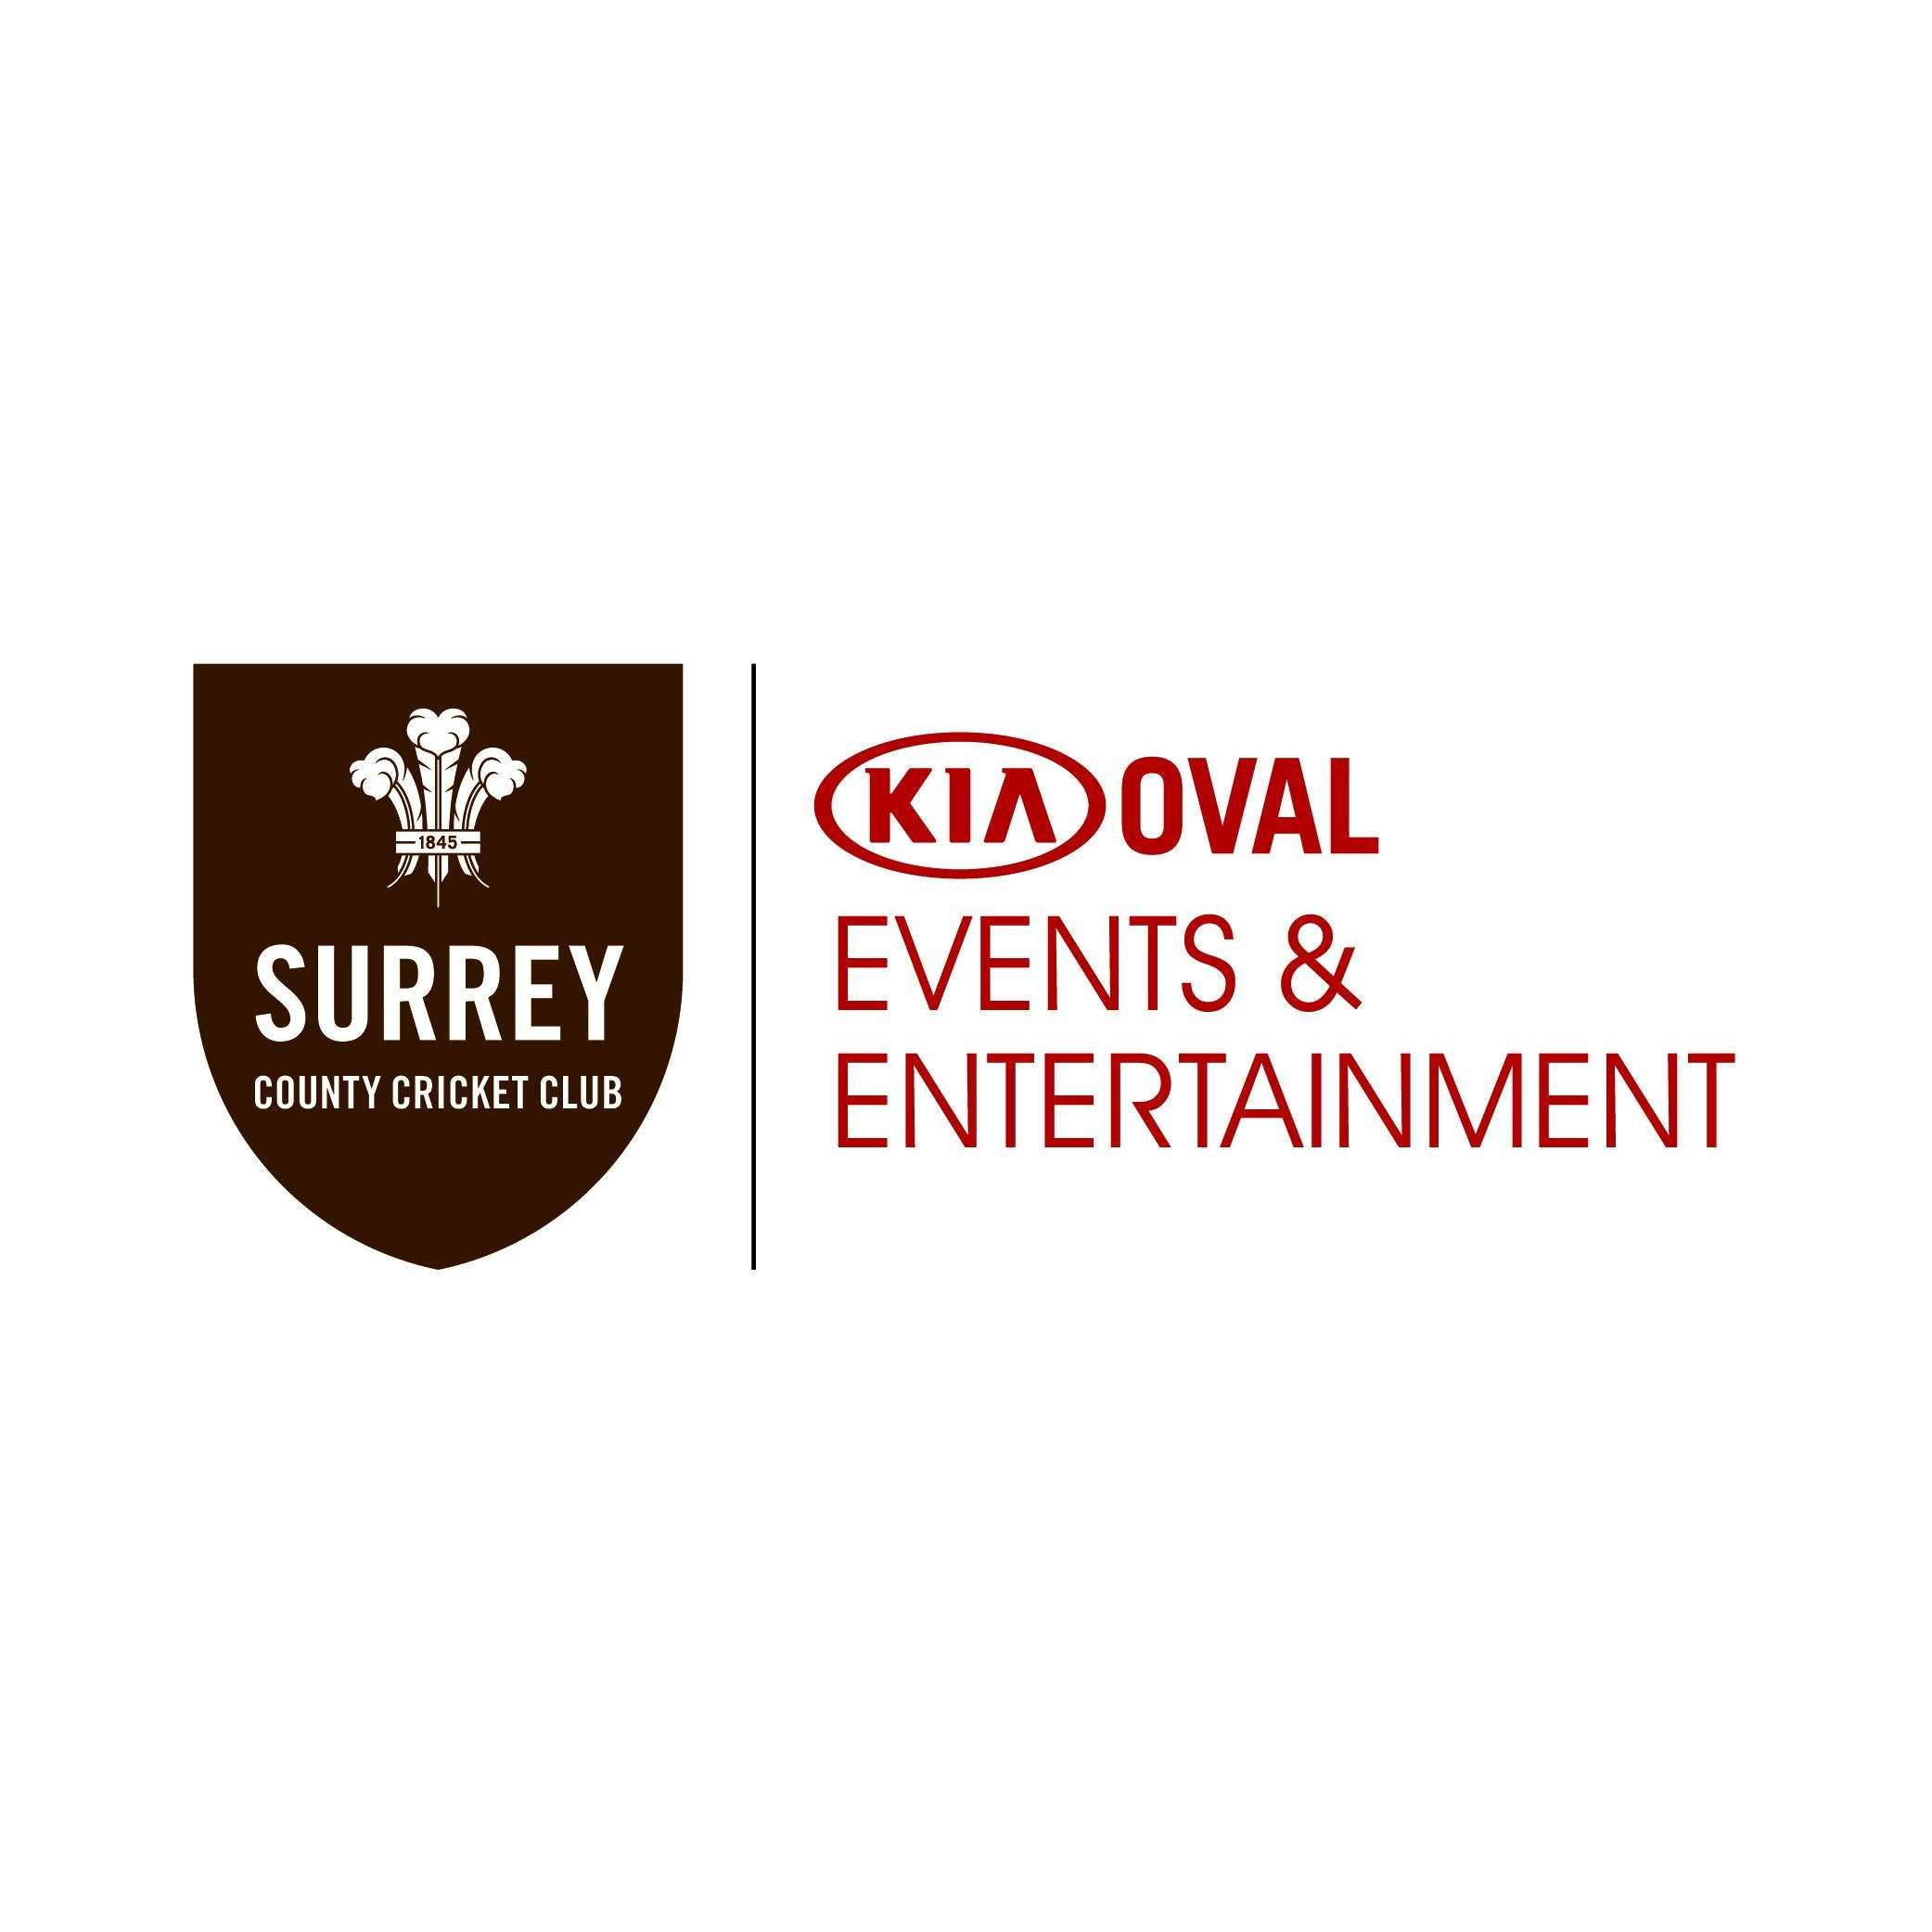 47 All New Kia Oval 2020 Tickets Redesign for Kia Oval 2020 Tickets